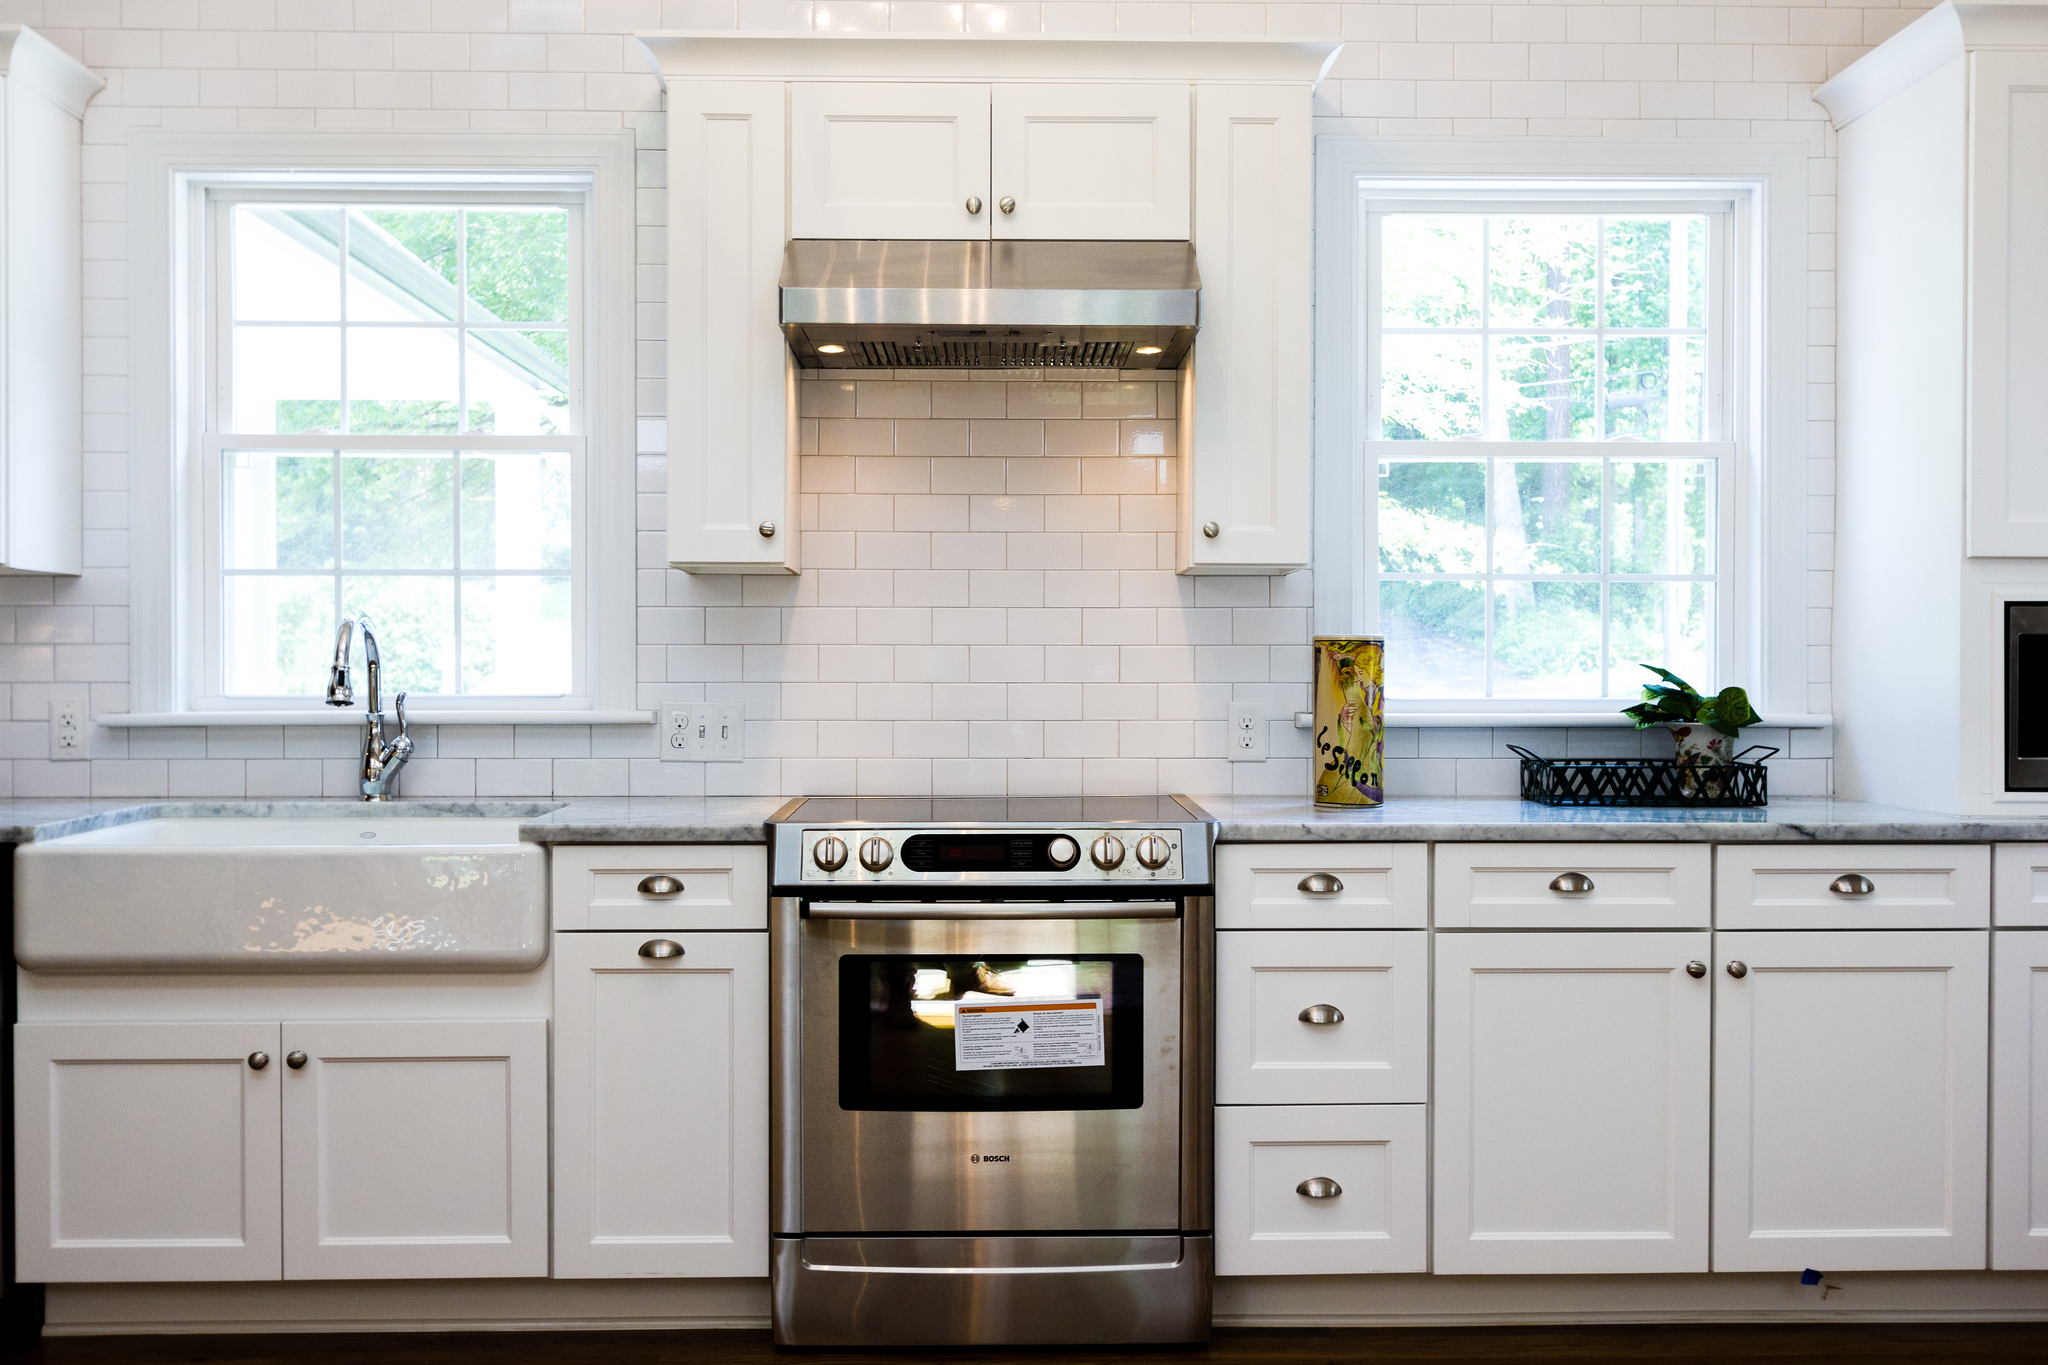 6 Renovated Kitchen With White Subway Tile Marble And Farmhouse Sink Cobblestone Dg On Remodelaholic